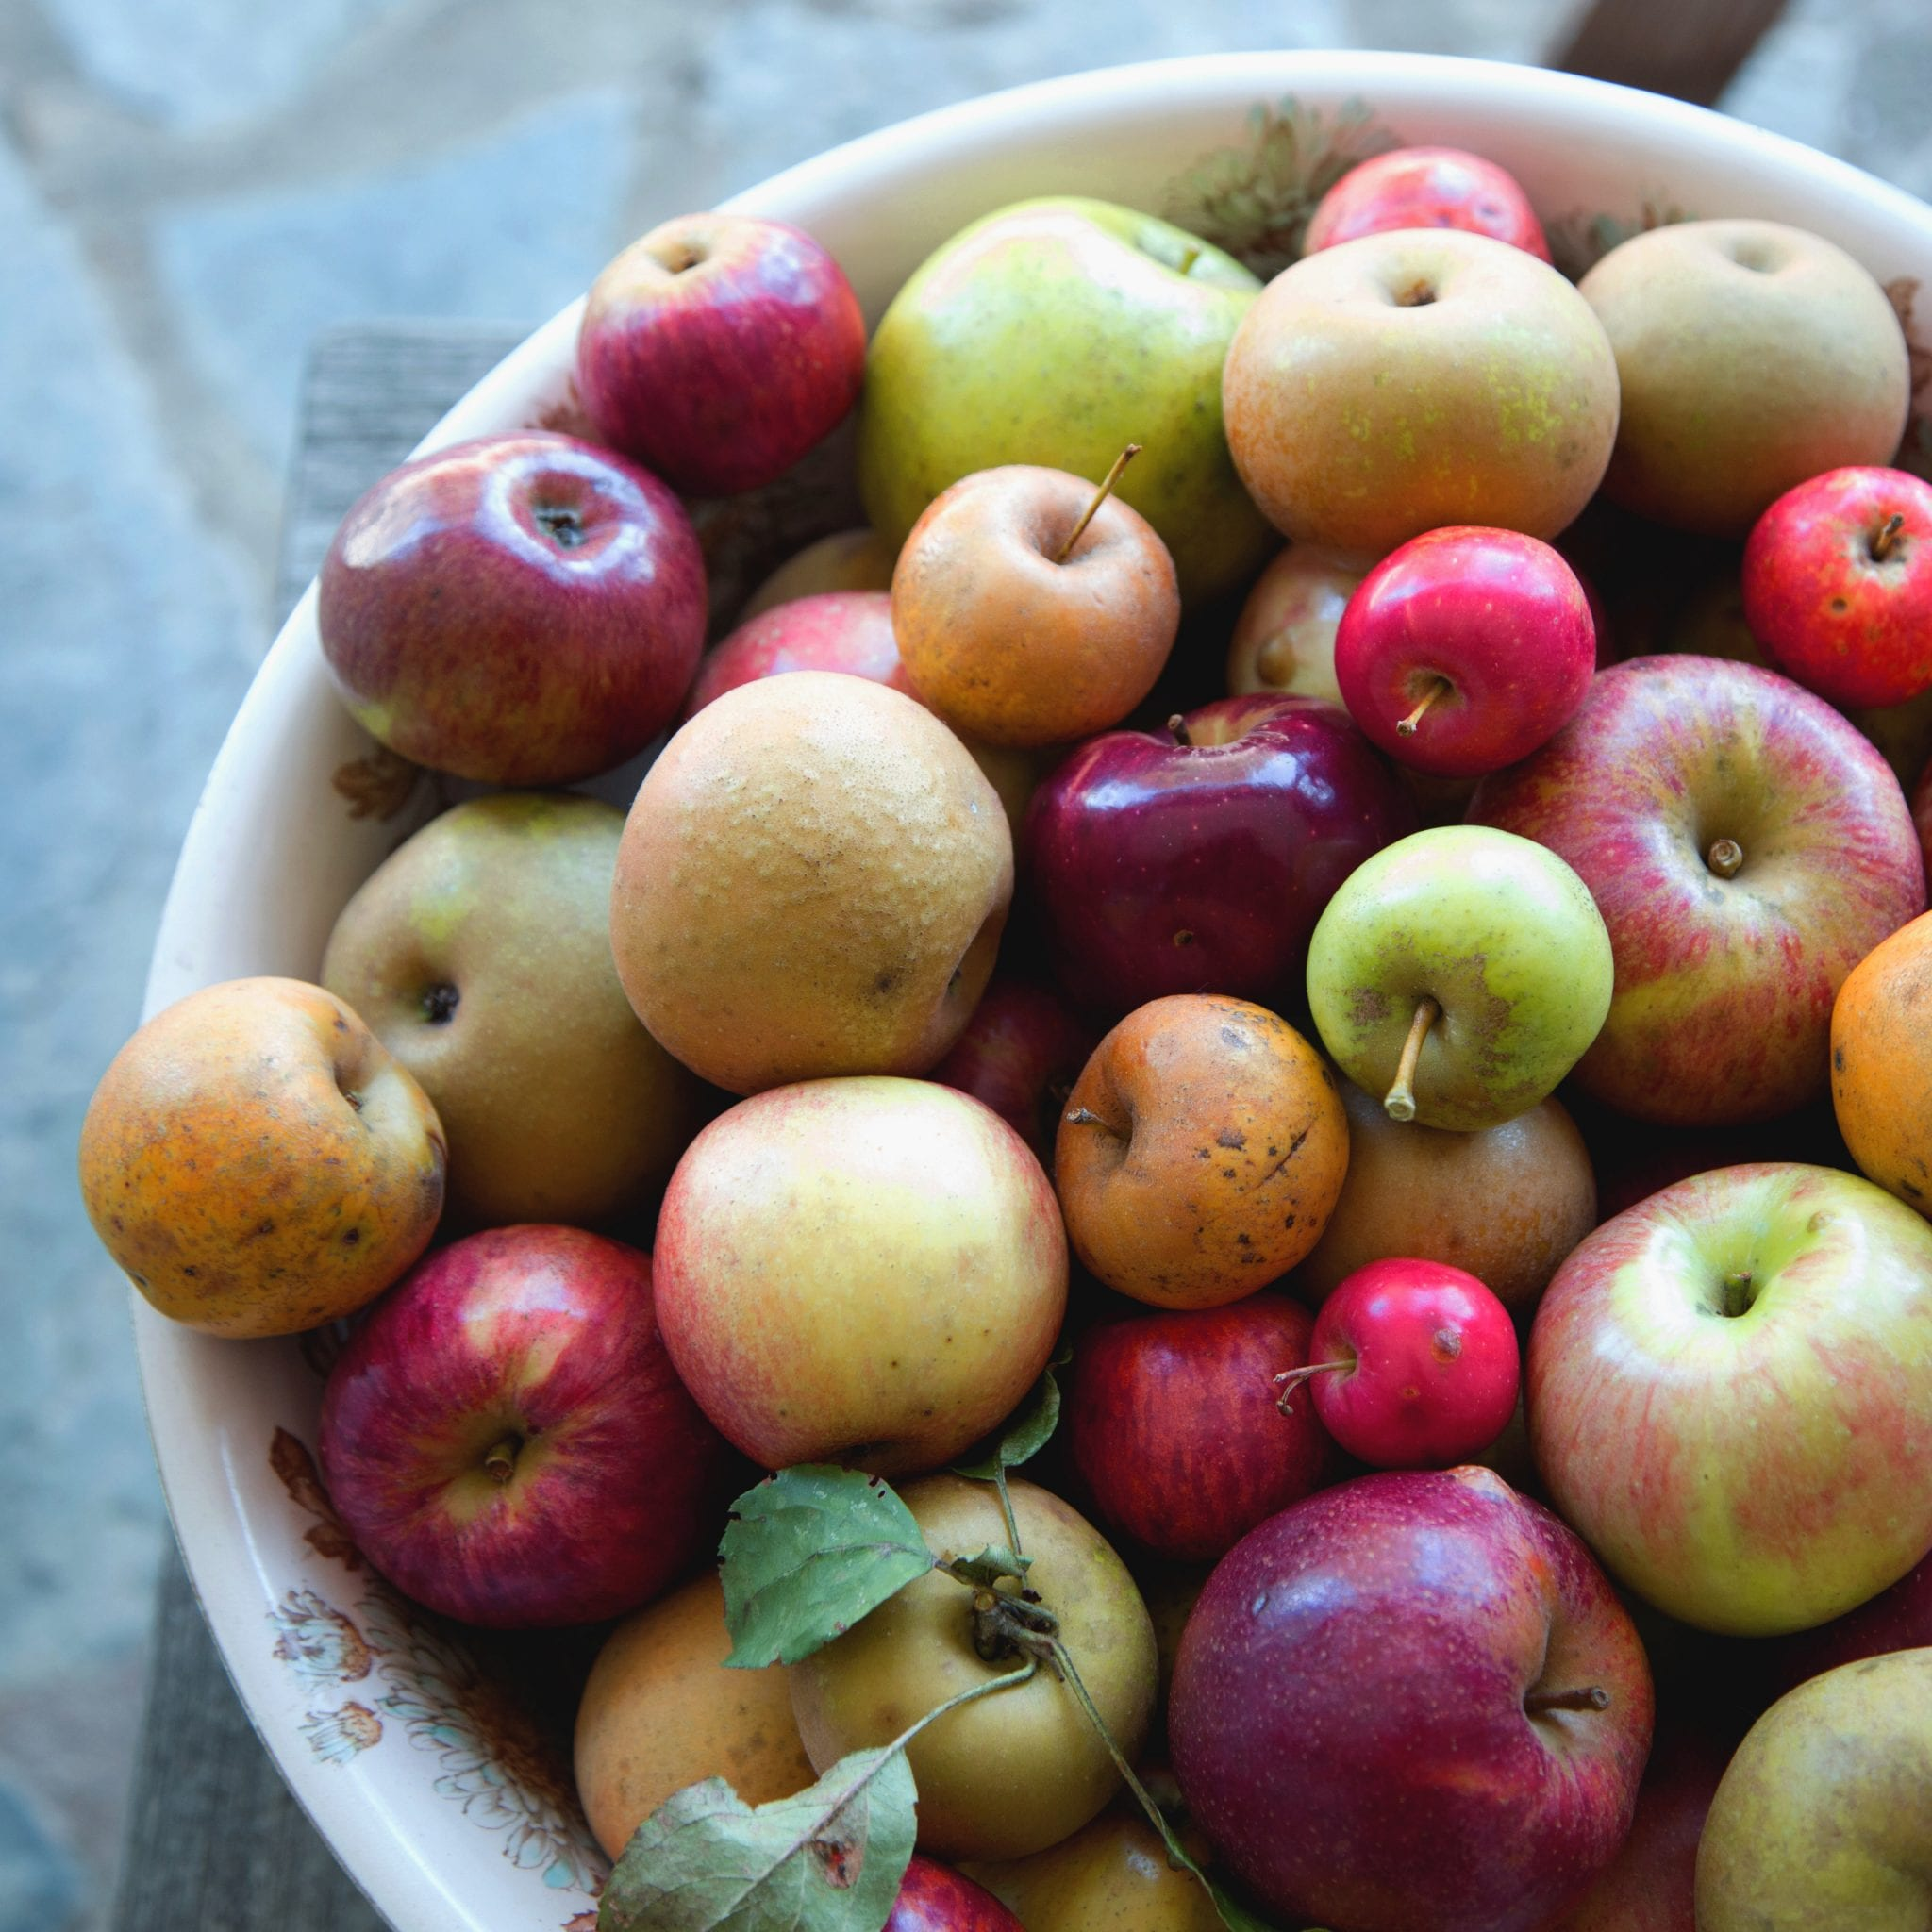 Meet Lee Calhoun: The Savior of Southern Heirloom Apples